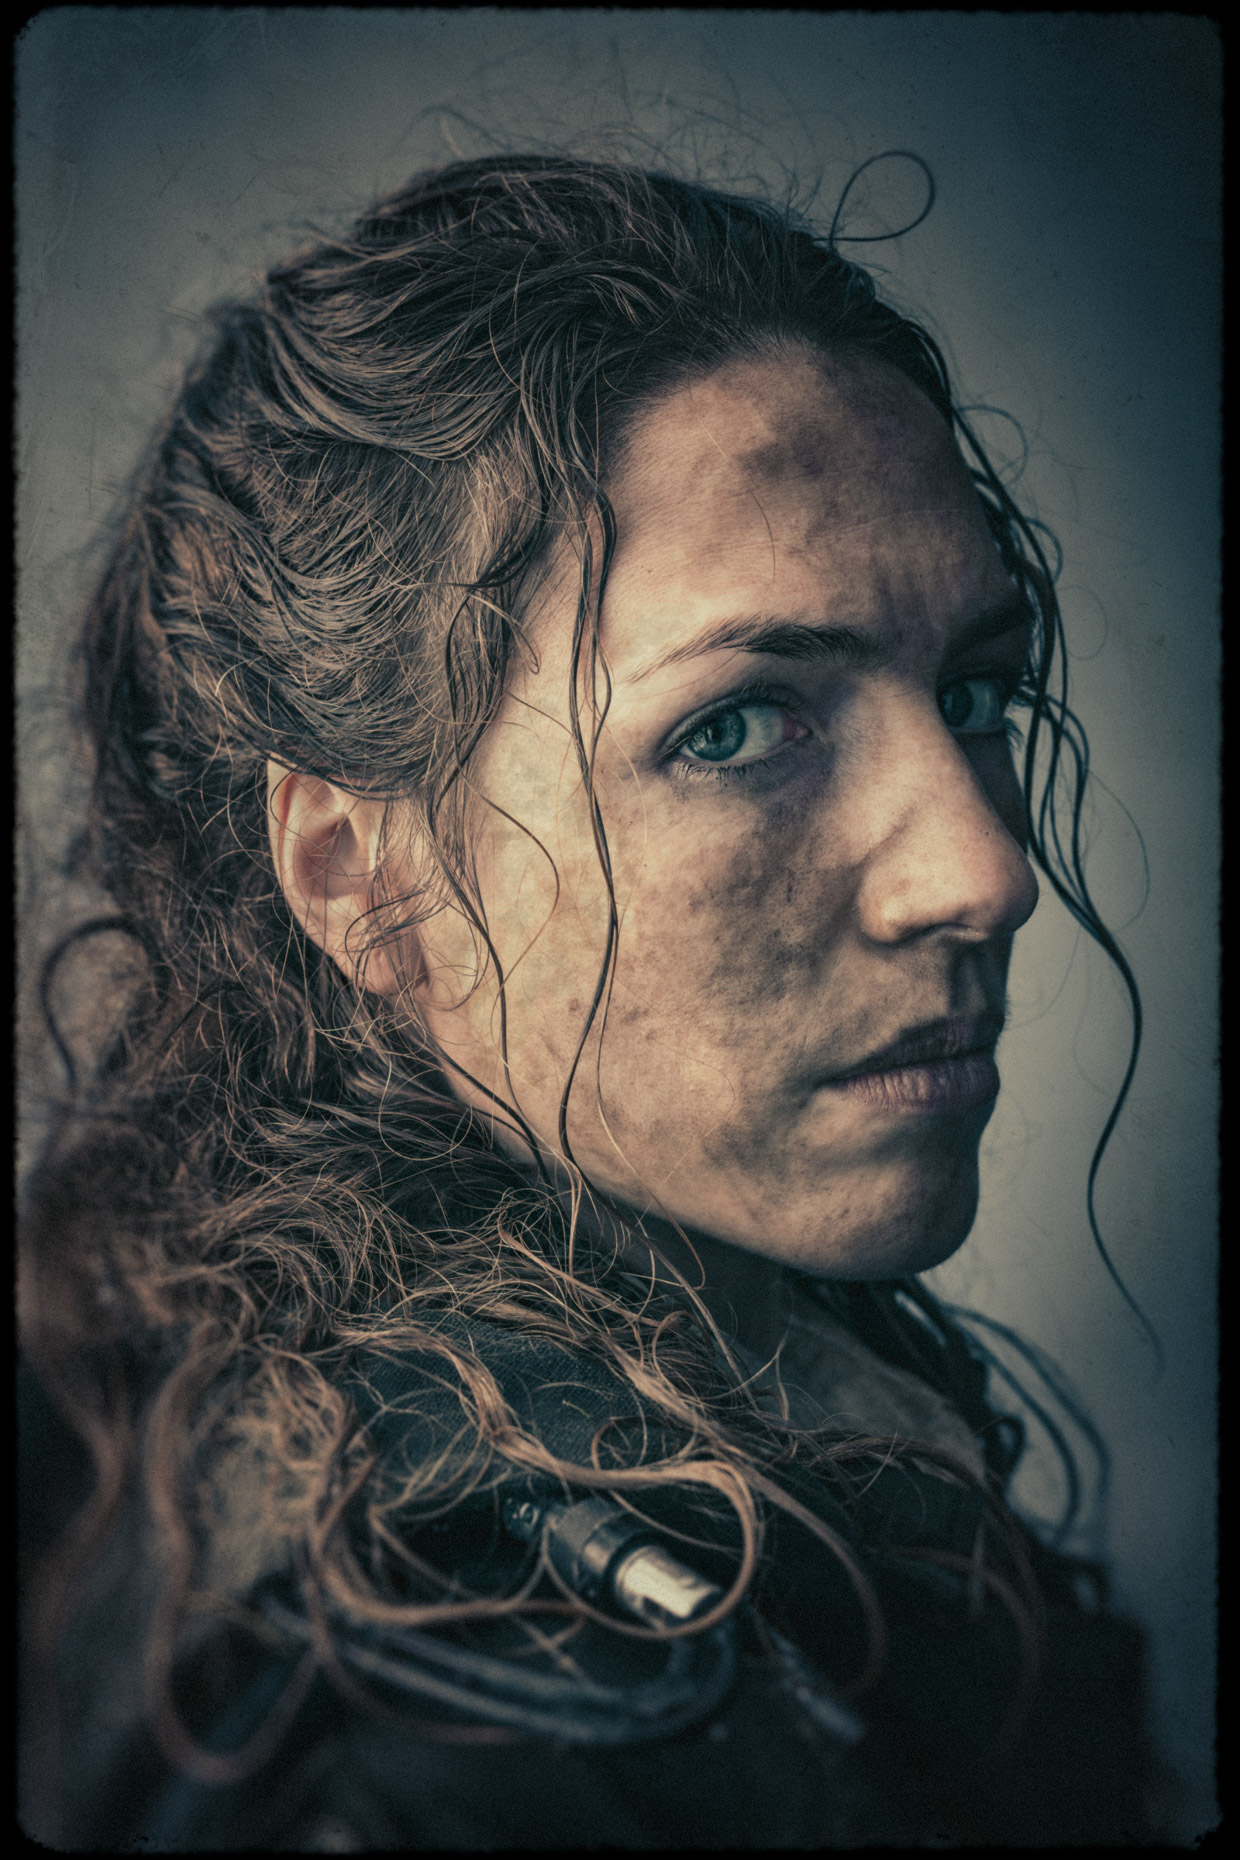 Character portrait of model and actor Katie Michels as Ilona in the cinematic series Bad Choices